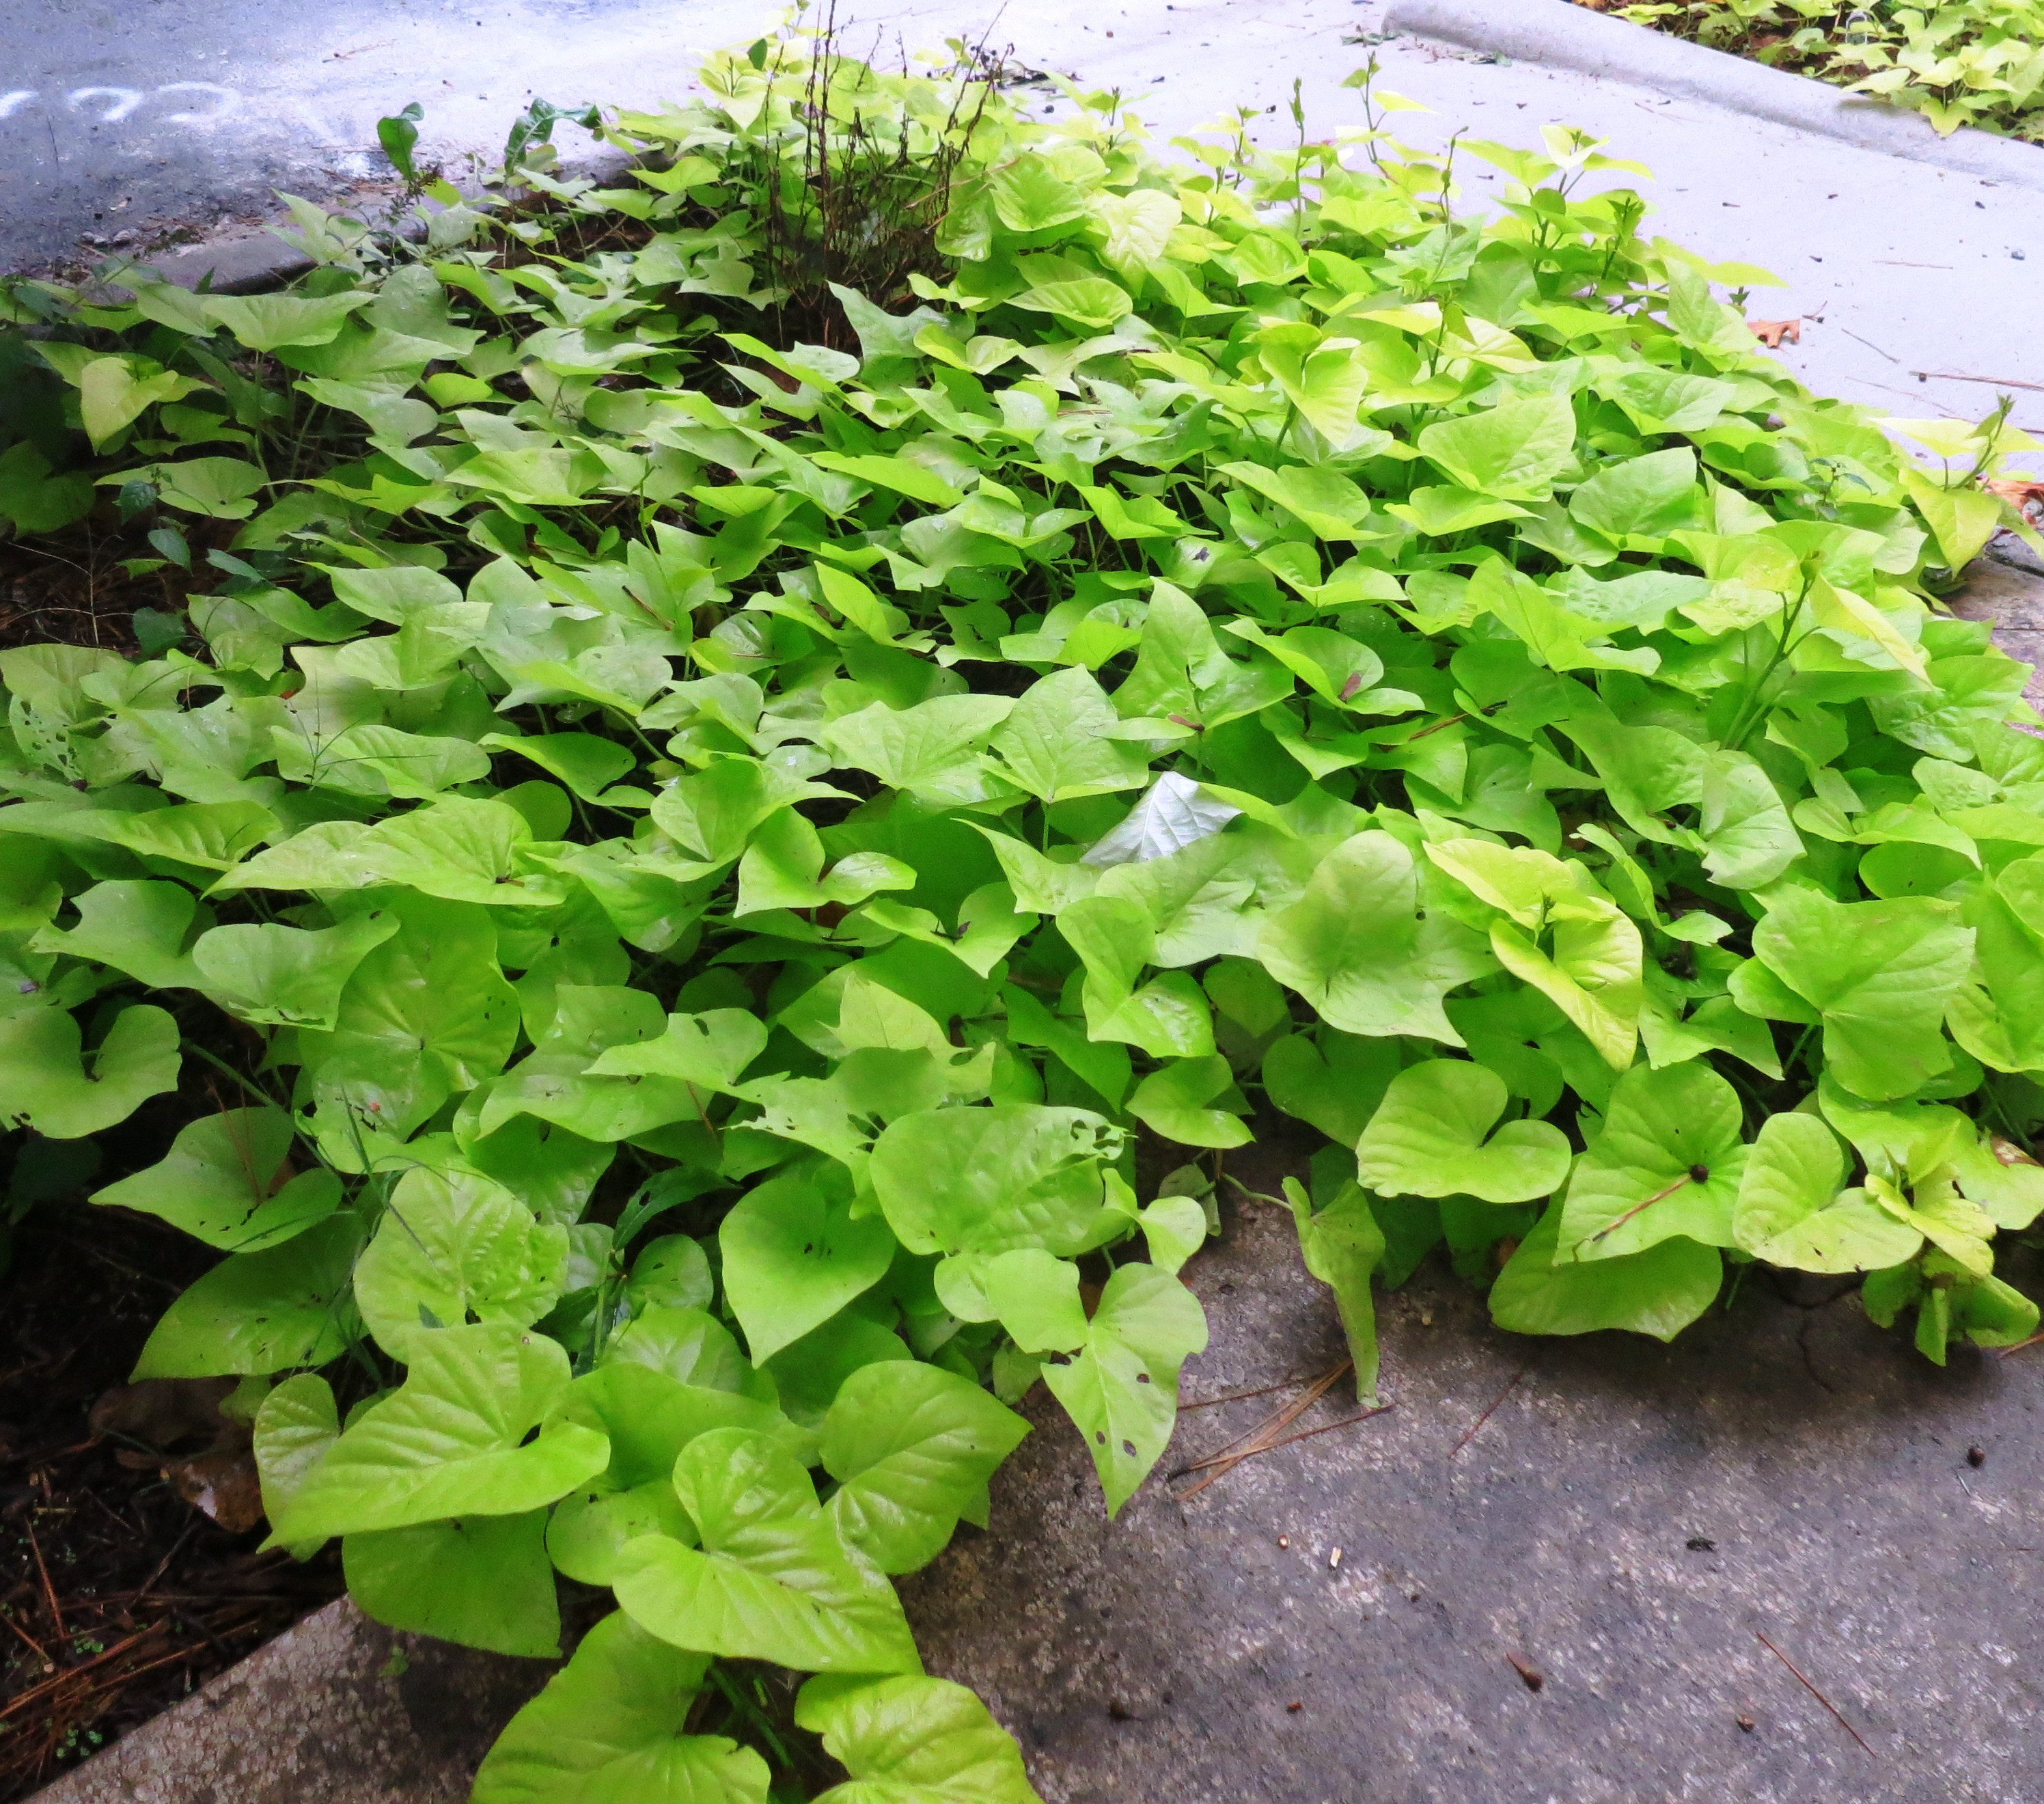 Potato Vine Plant  A rainy Sunday and mystery plants for the week